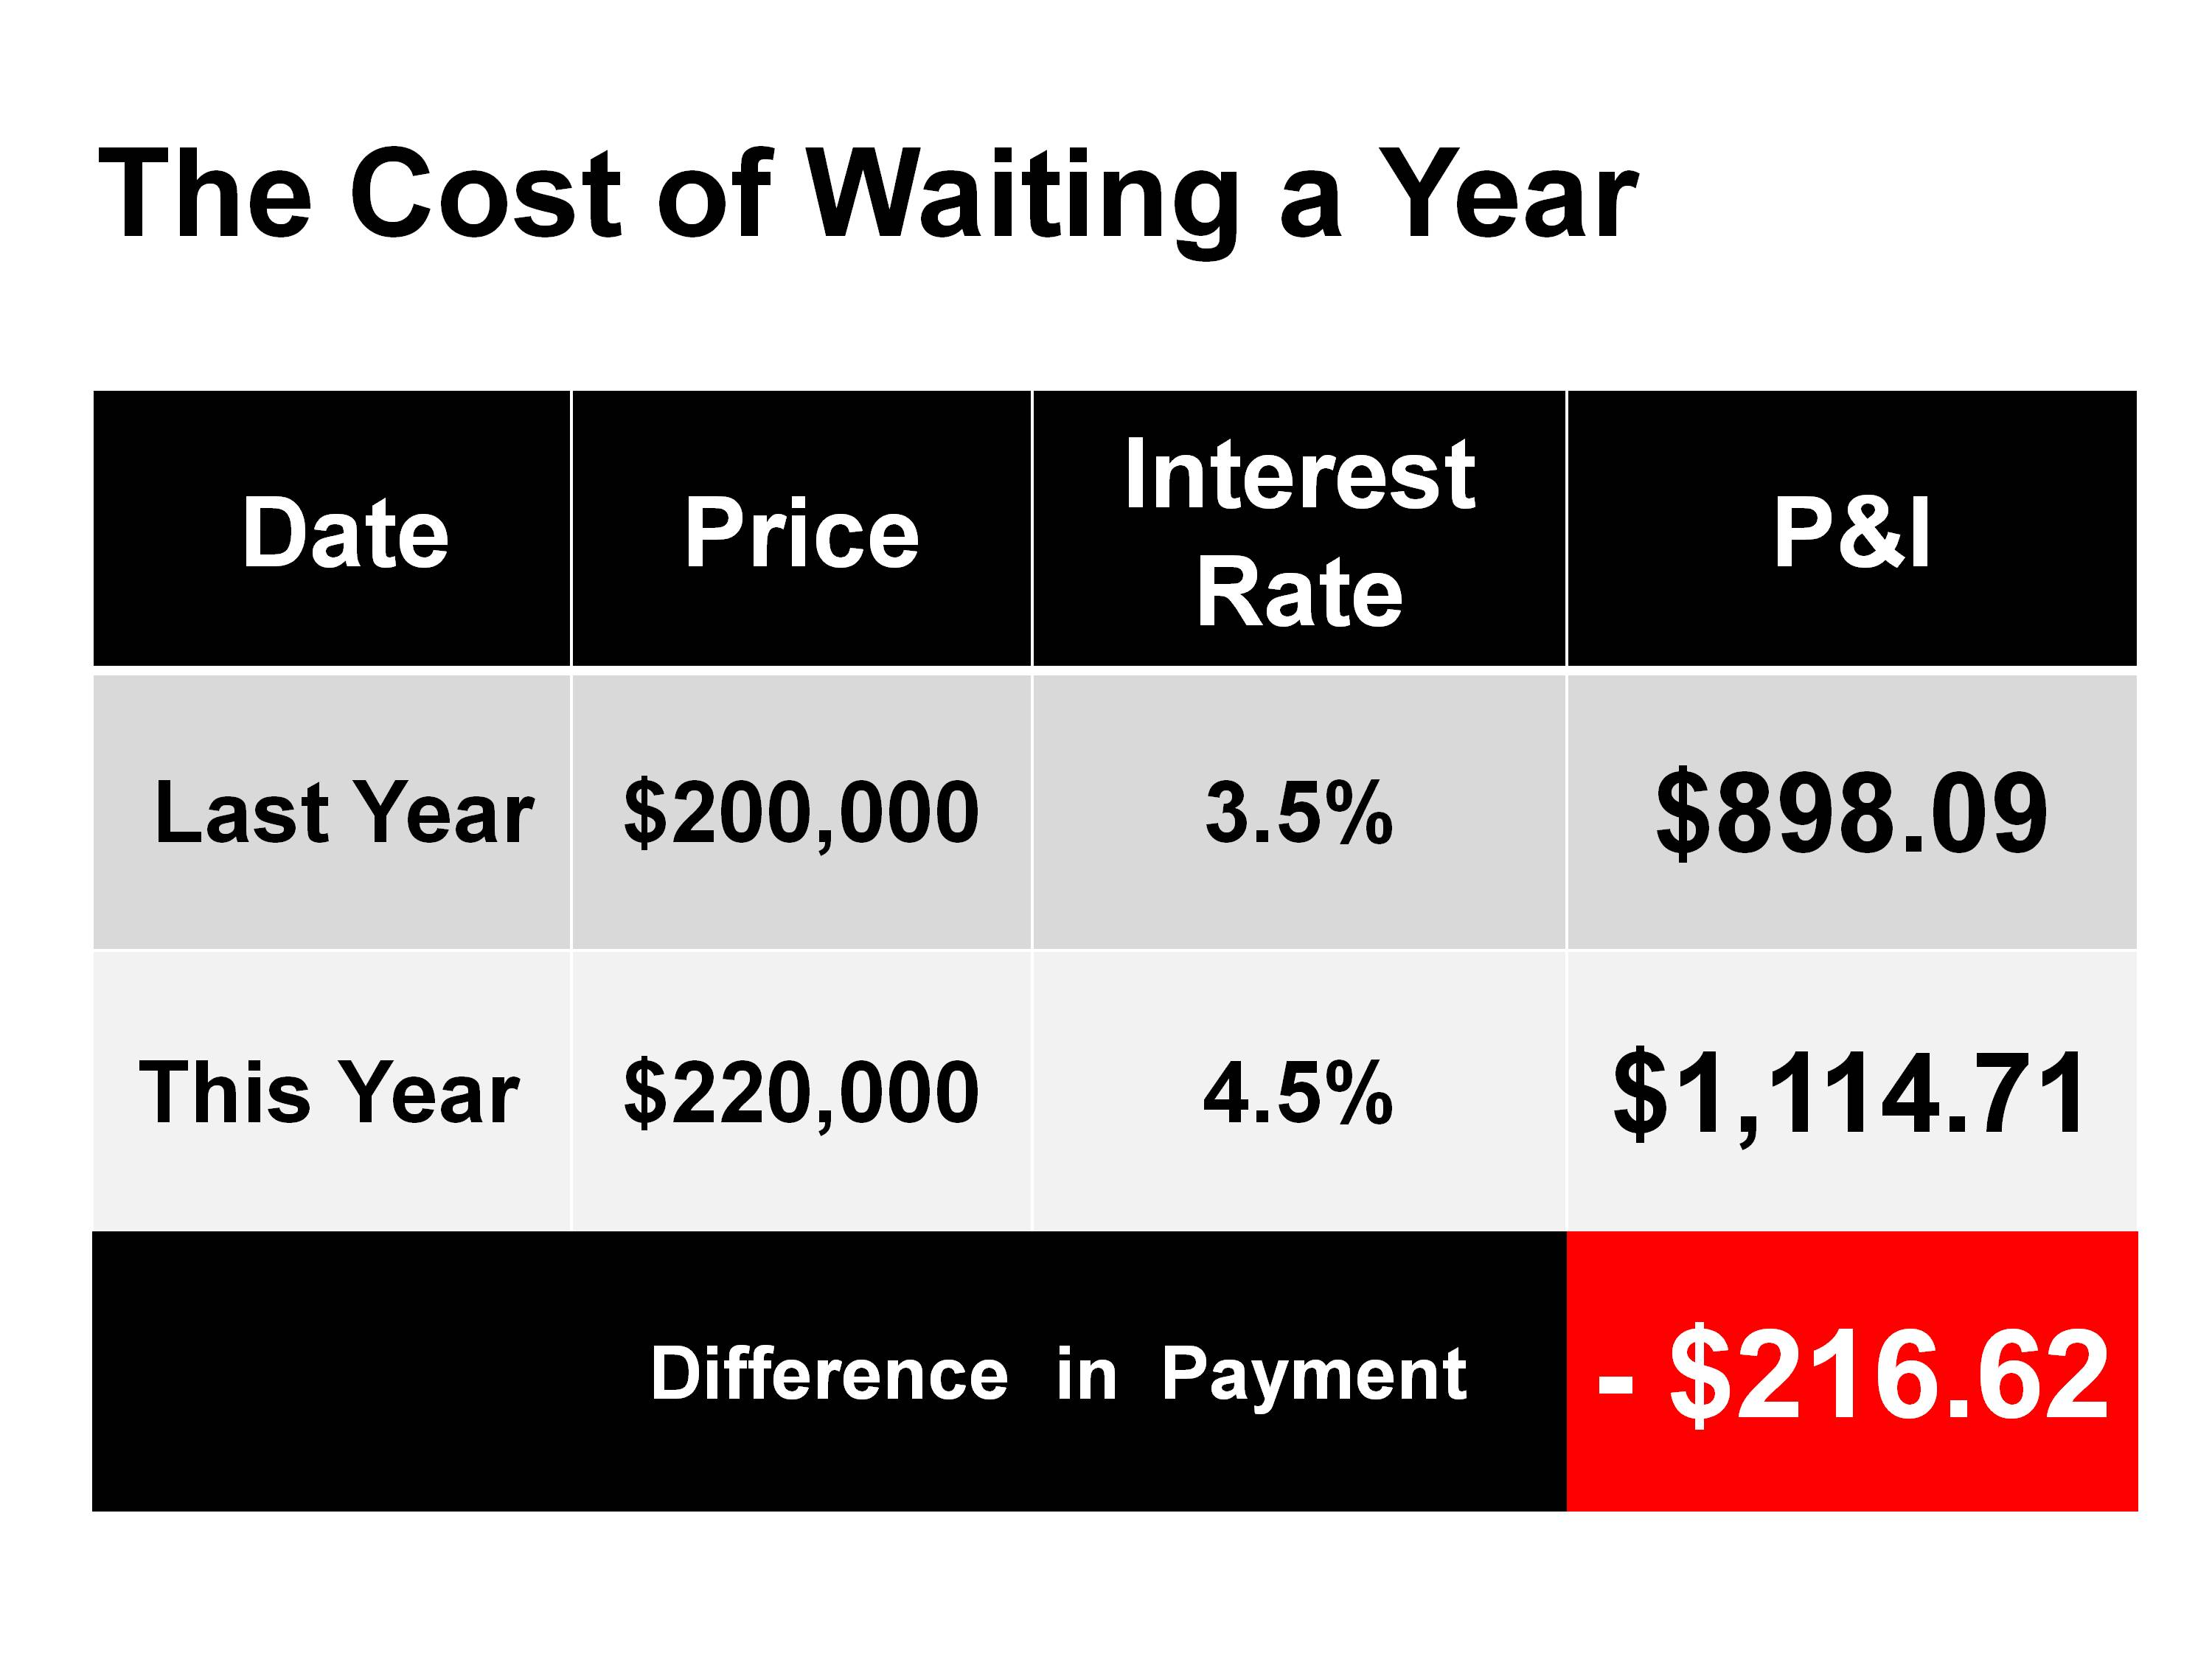 The Cost of Waiting a Year - Home Loans by Sean Young